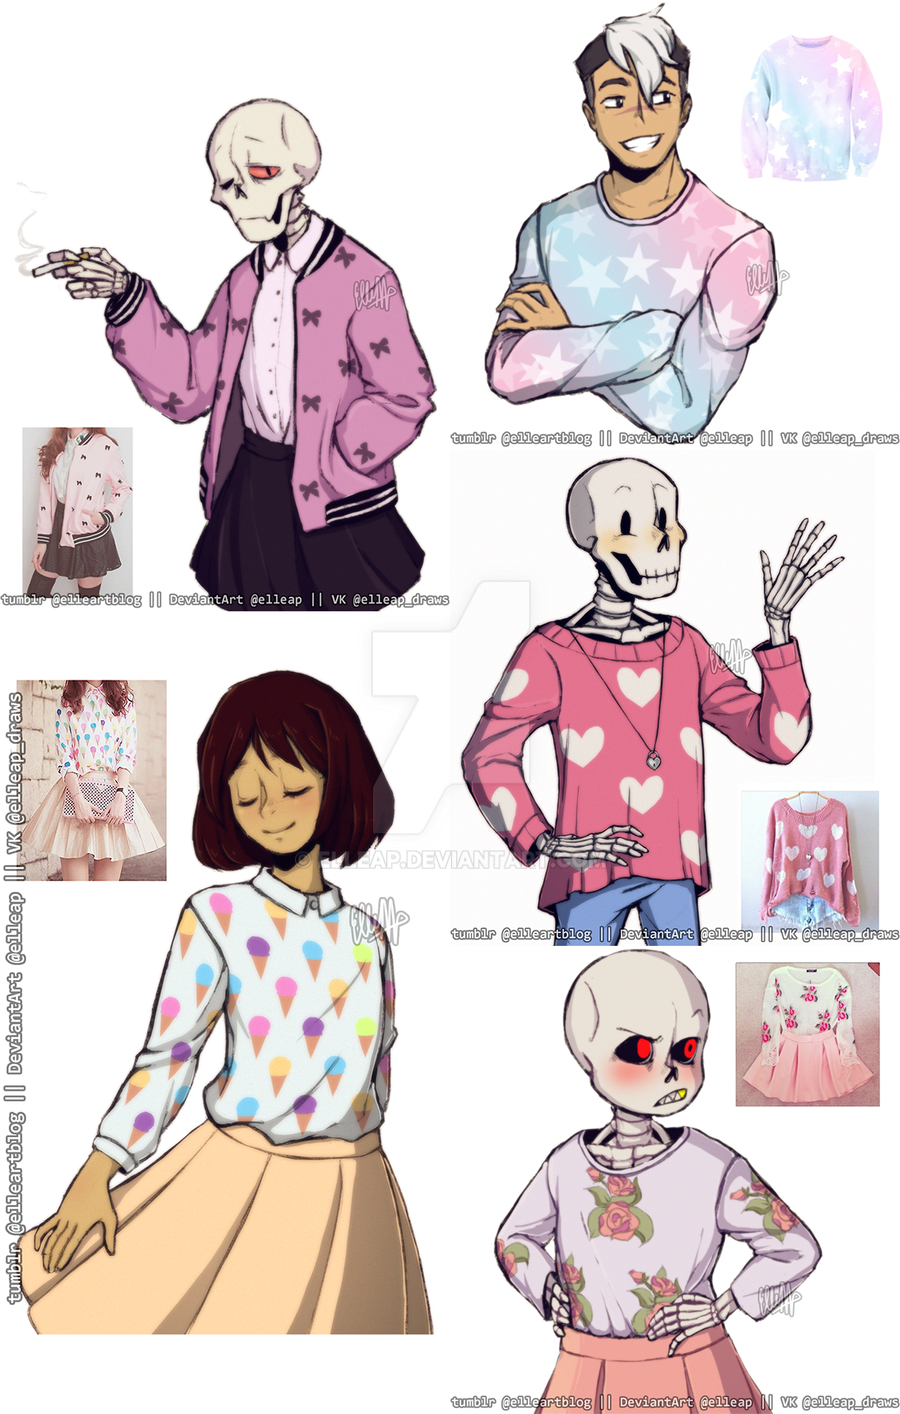 Outfit Meme By ElleAP On DeviantArt